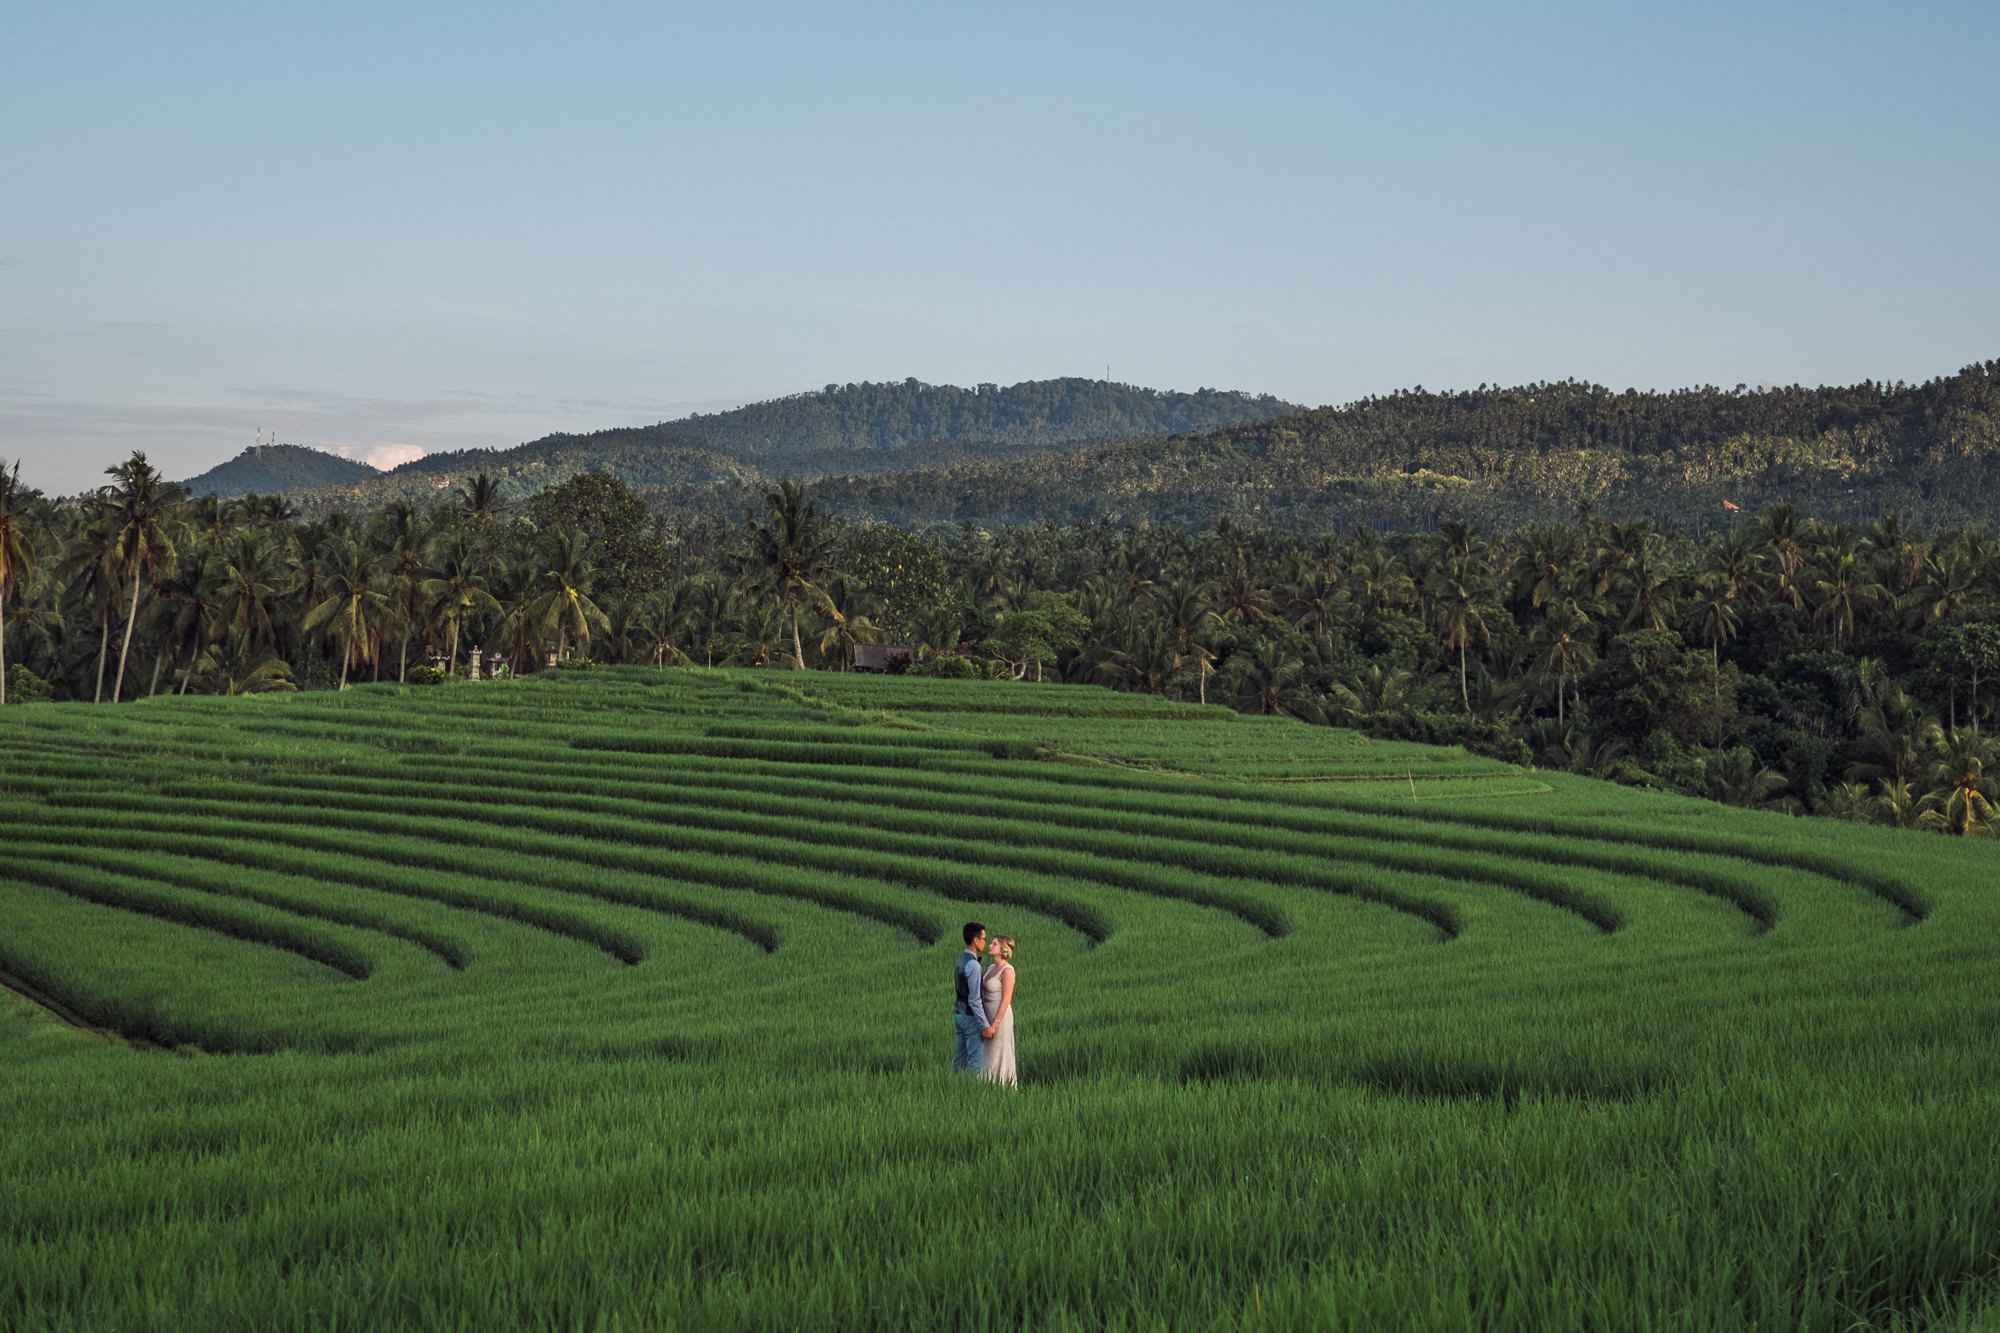 Landscape portrait of couple in rice field photo by Nordica Photography